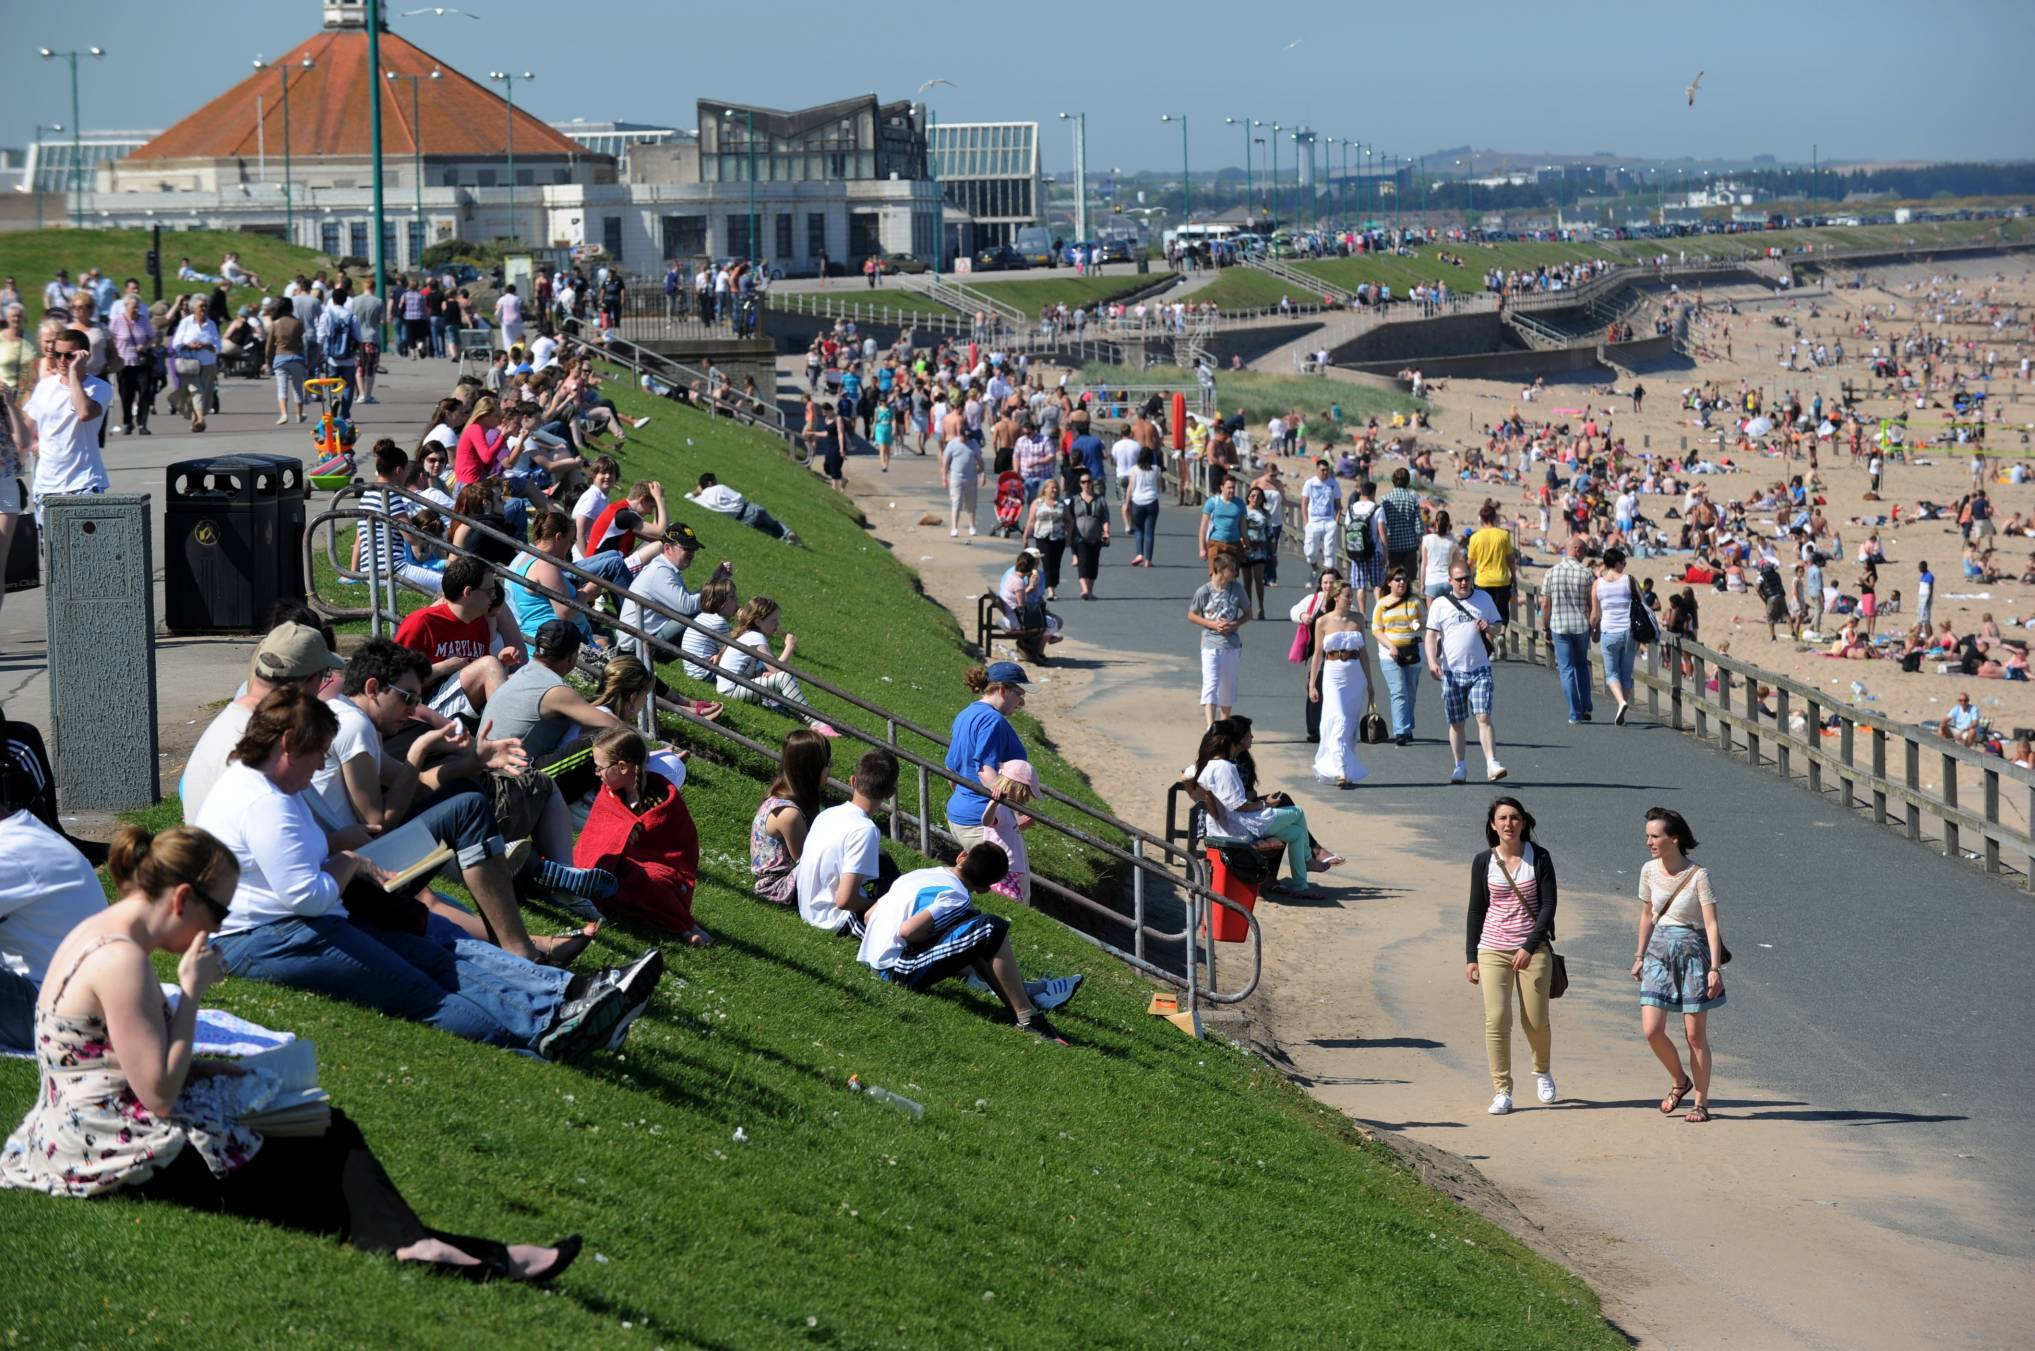 Sunseekers at Aberdeen beach during one of our rare heatwaves in 2012